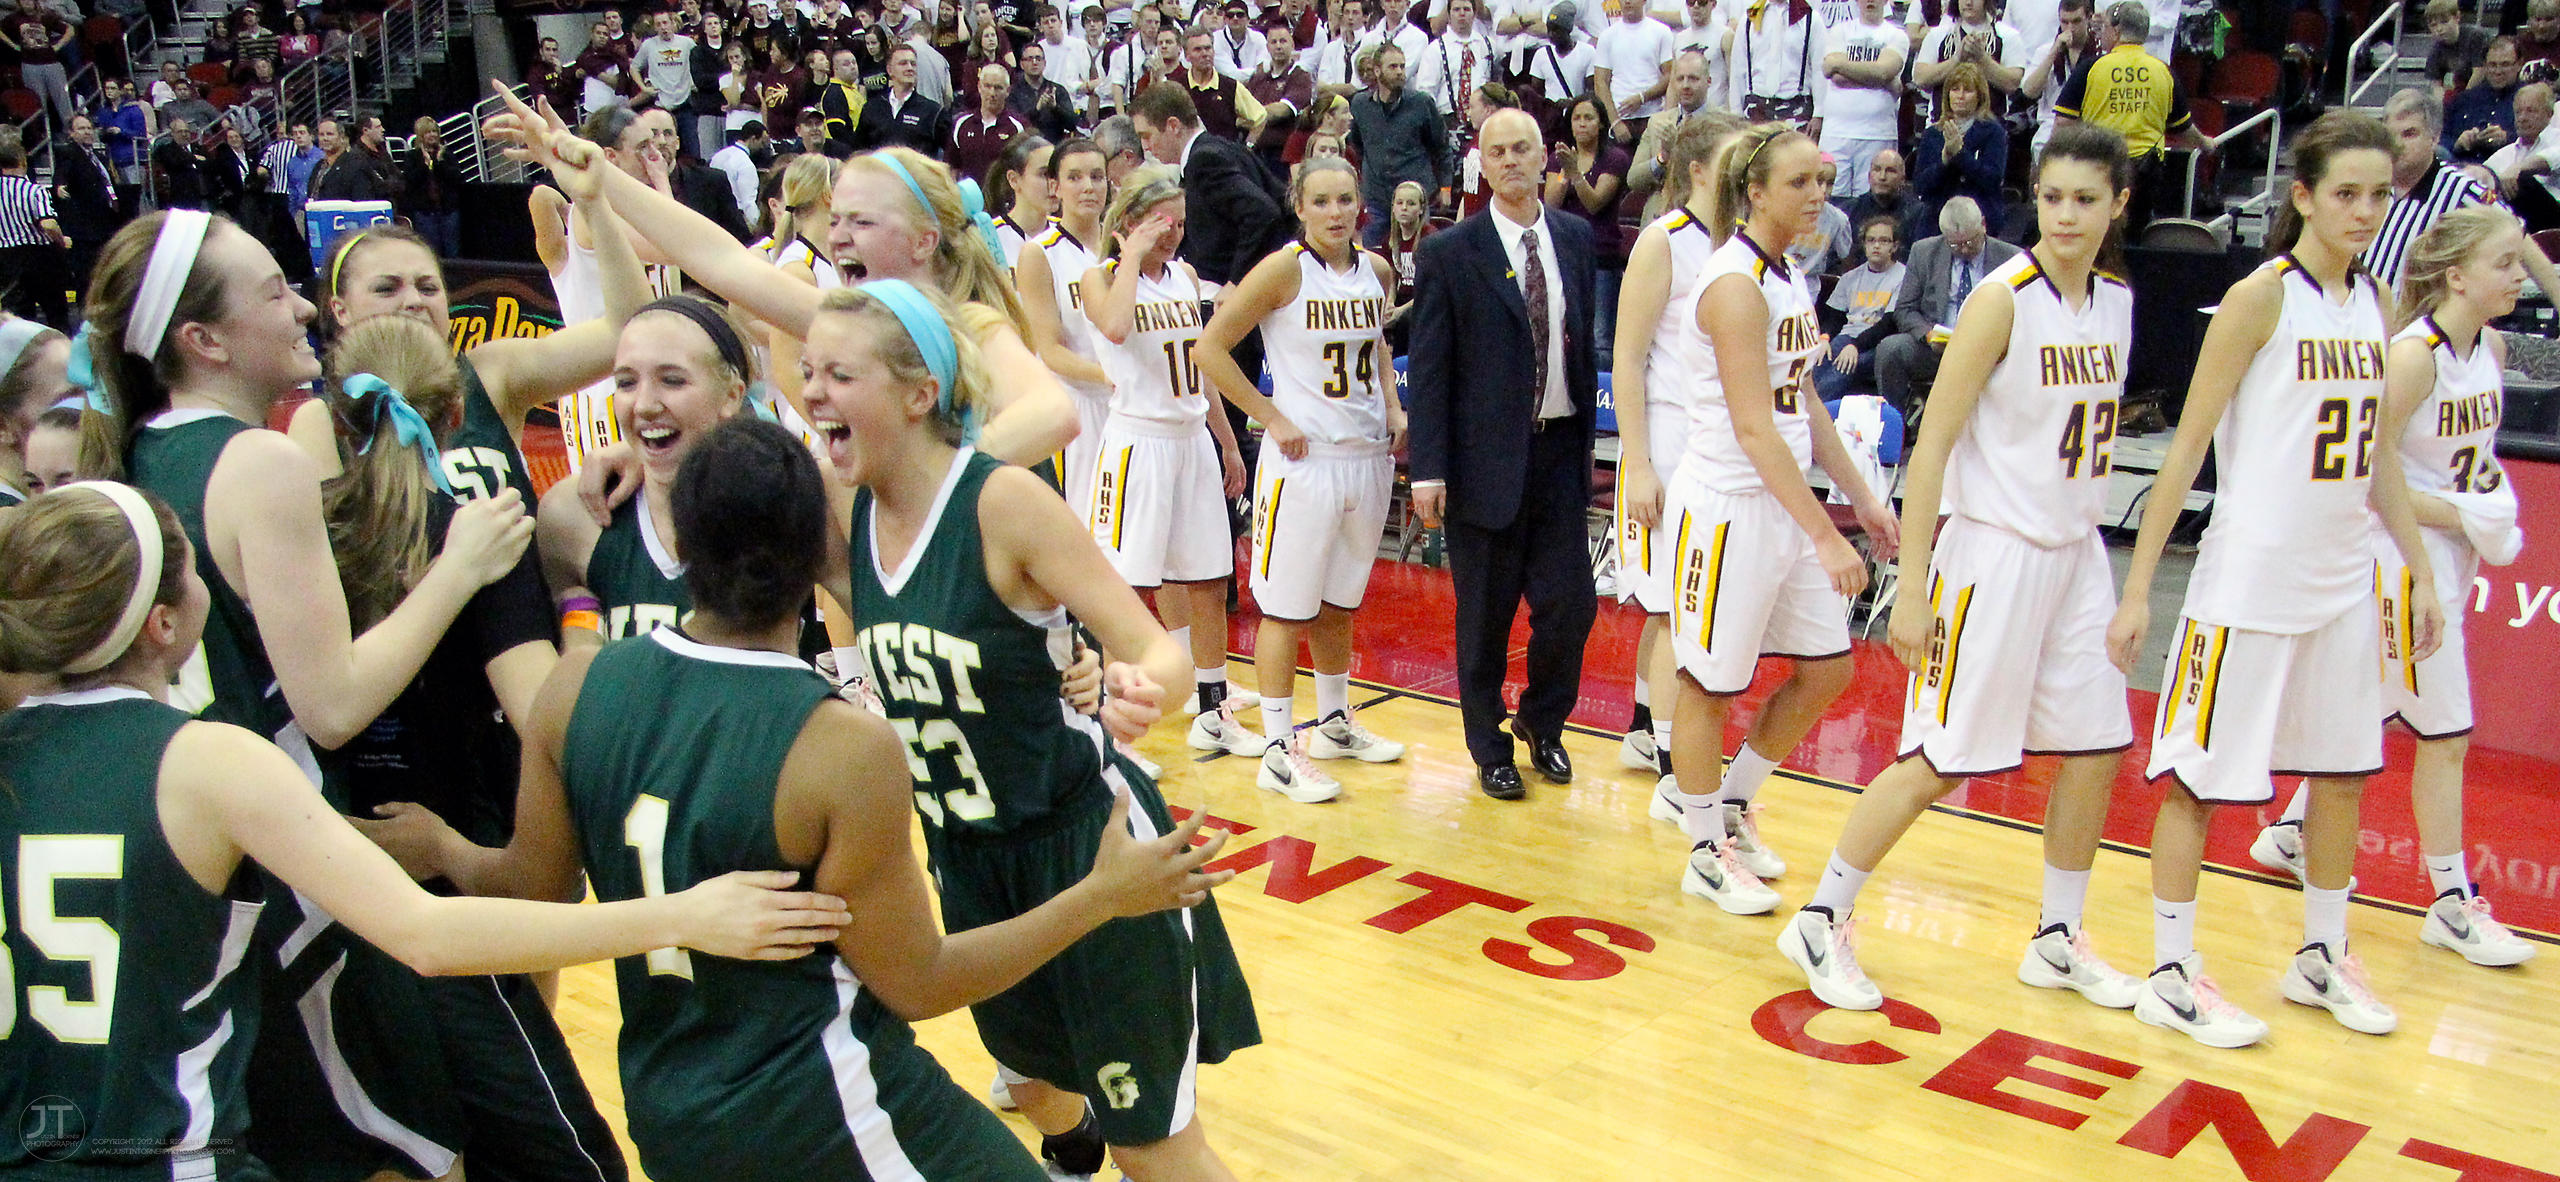 Girls Basketball 4A State Championship Game Iowa City West vs Ankeny 3/3/12 photos